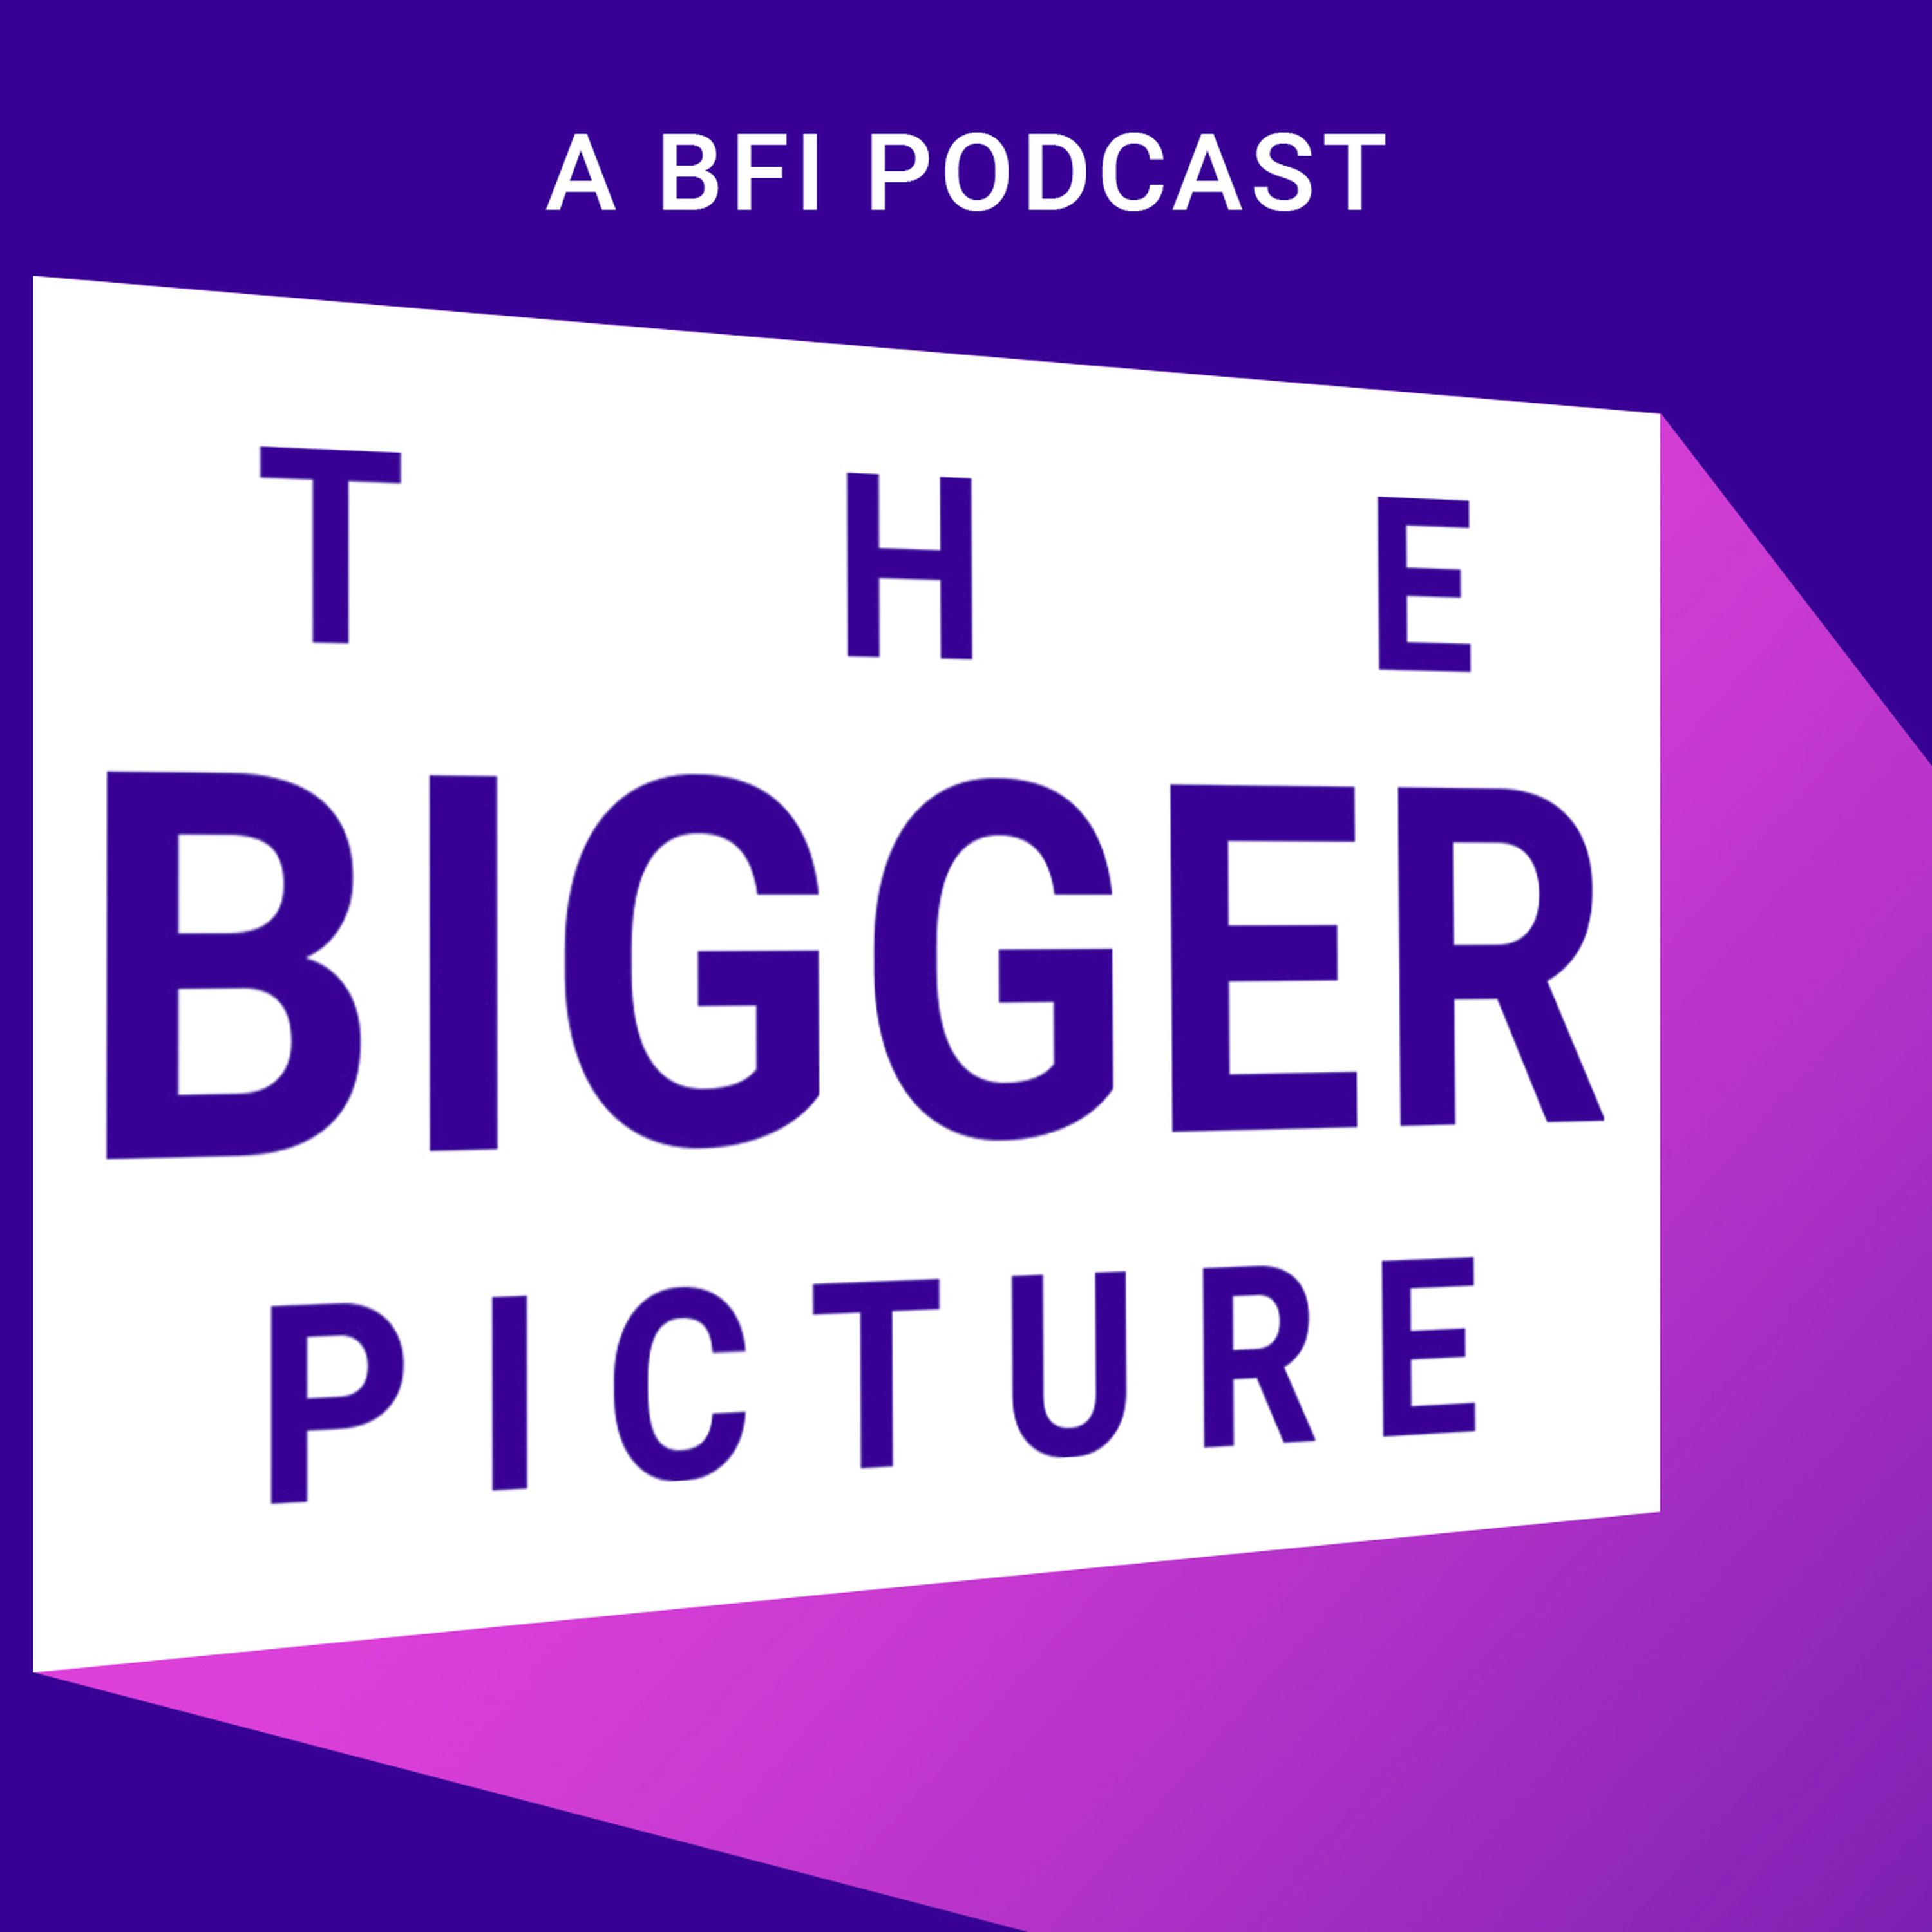 Atlantics and supernatural love | The Bigger Picture, presented by The British Film Institute on acast